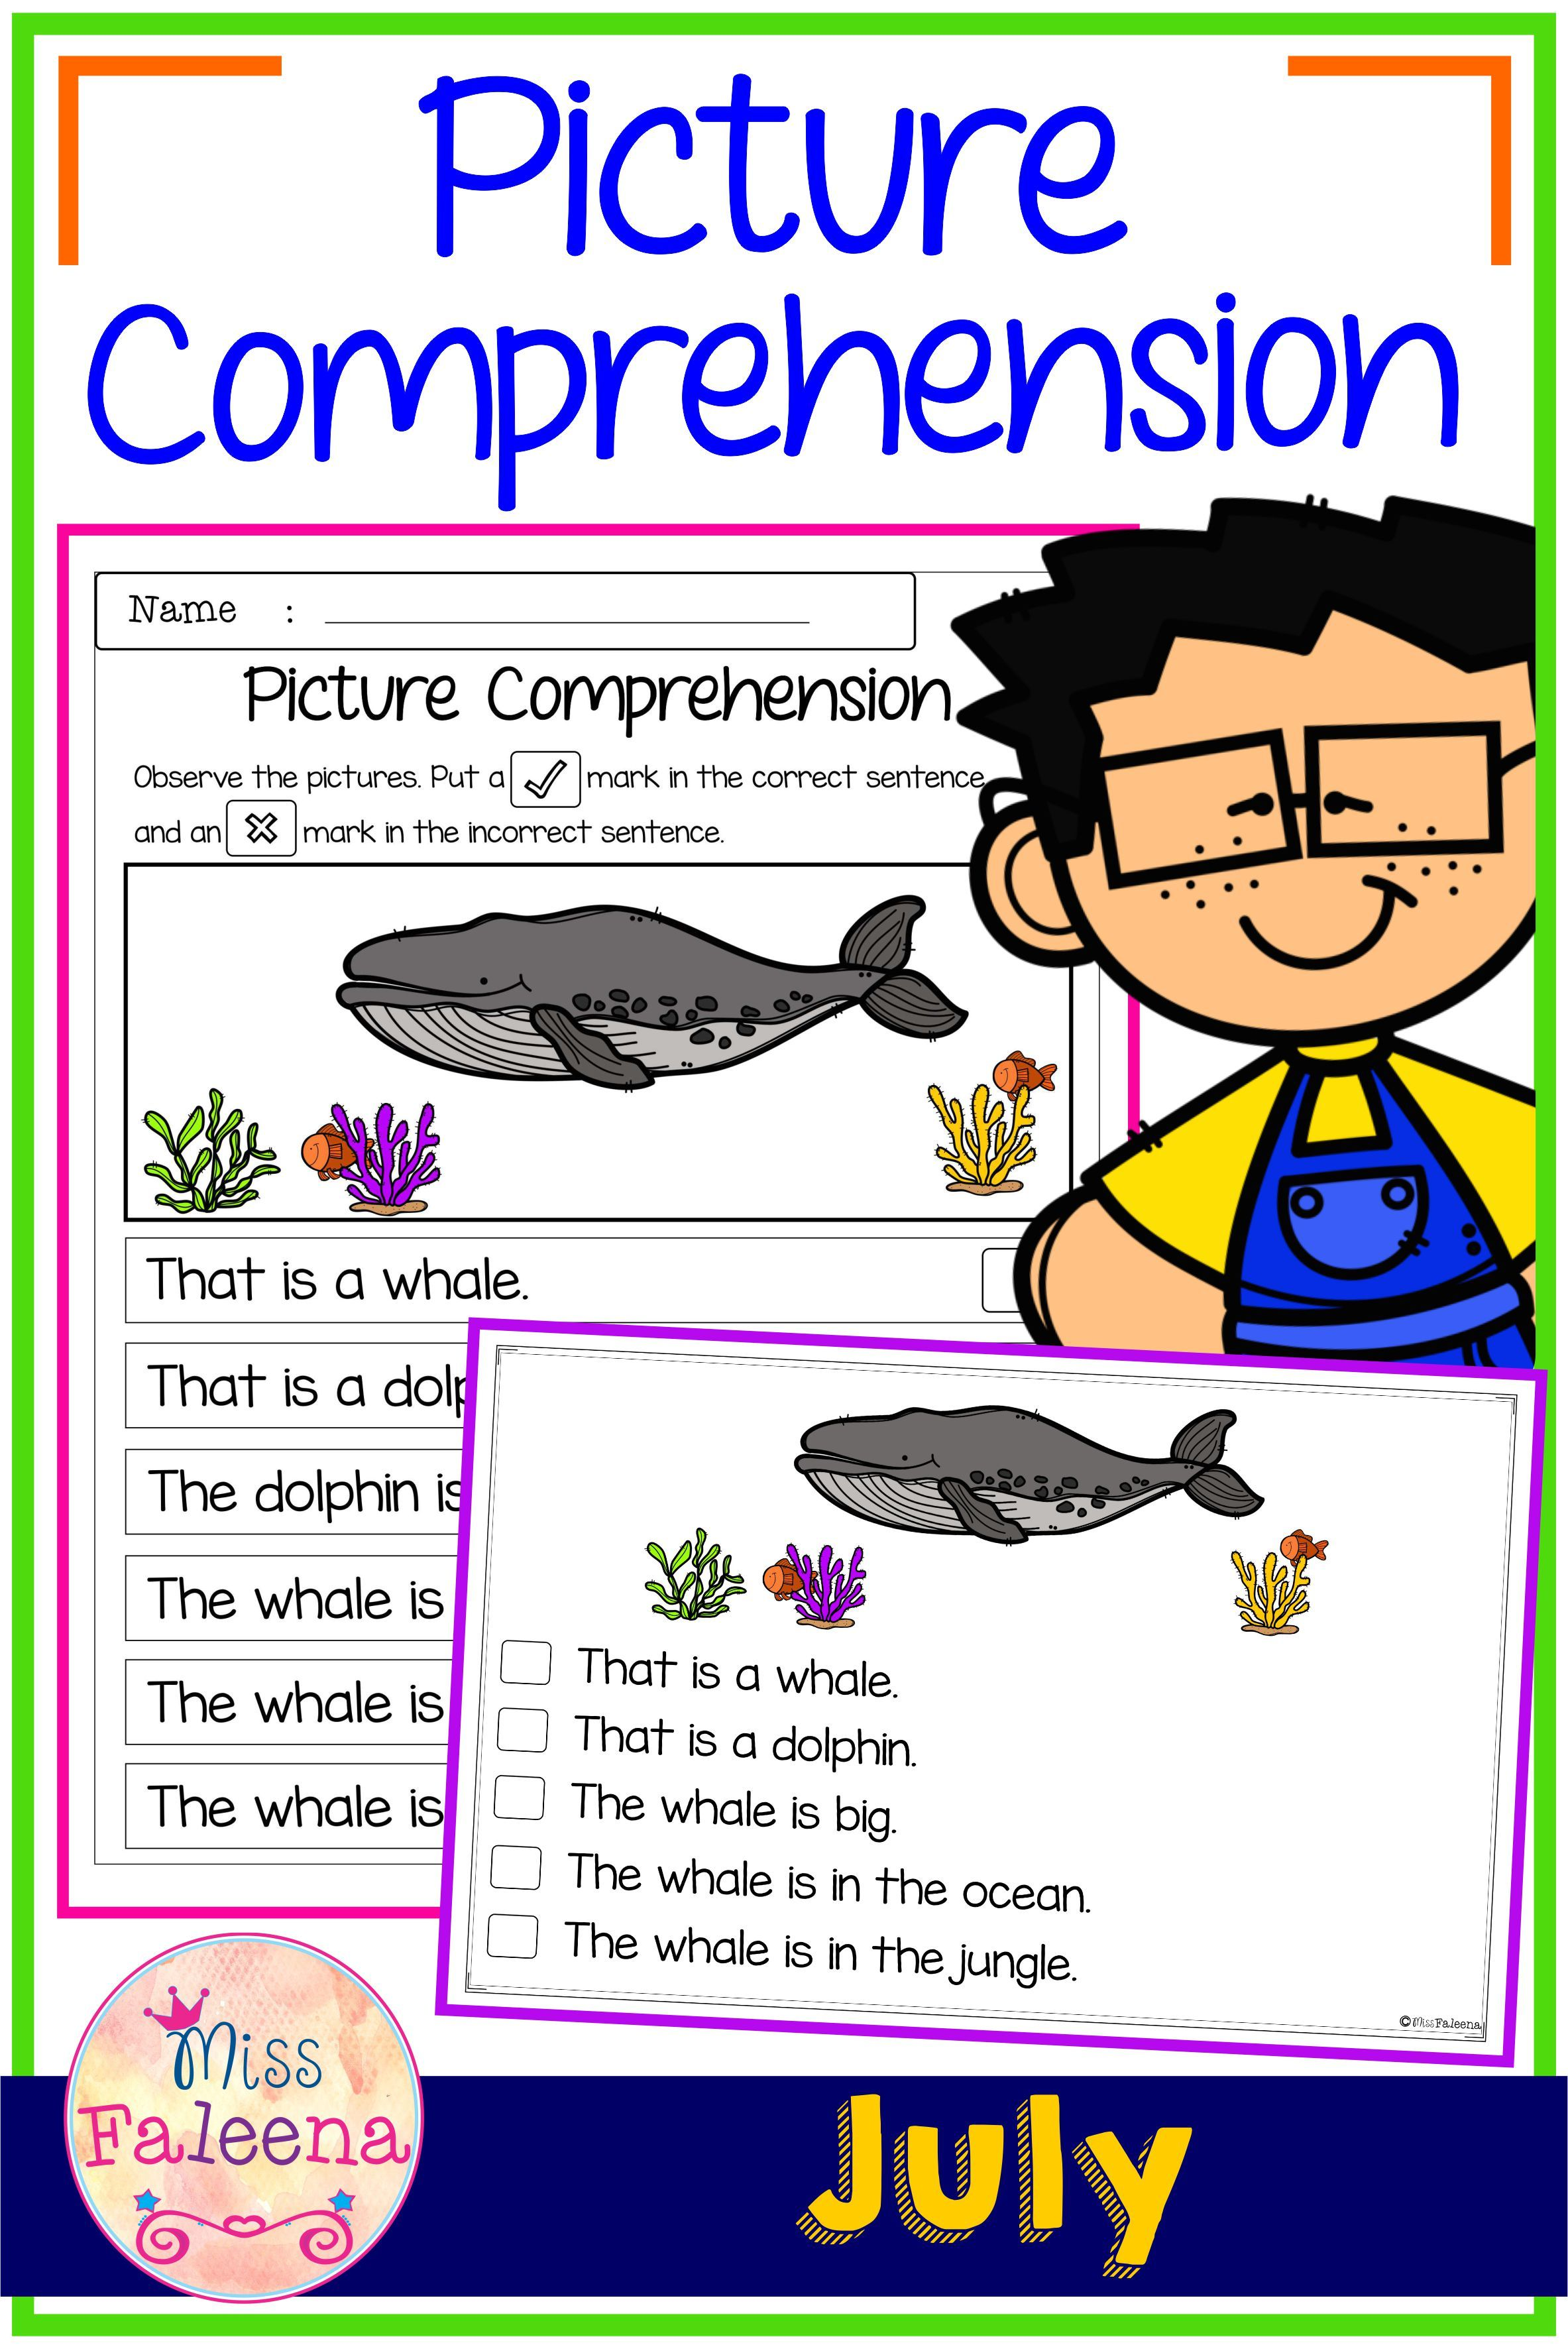 July Picture Comprehension Cards And Worksheets Di